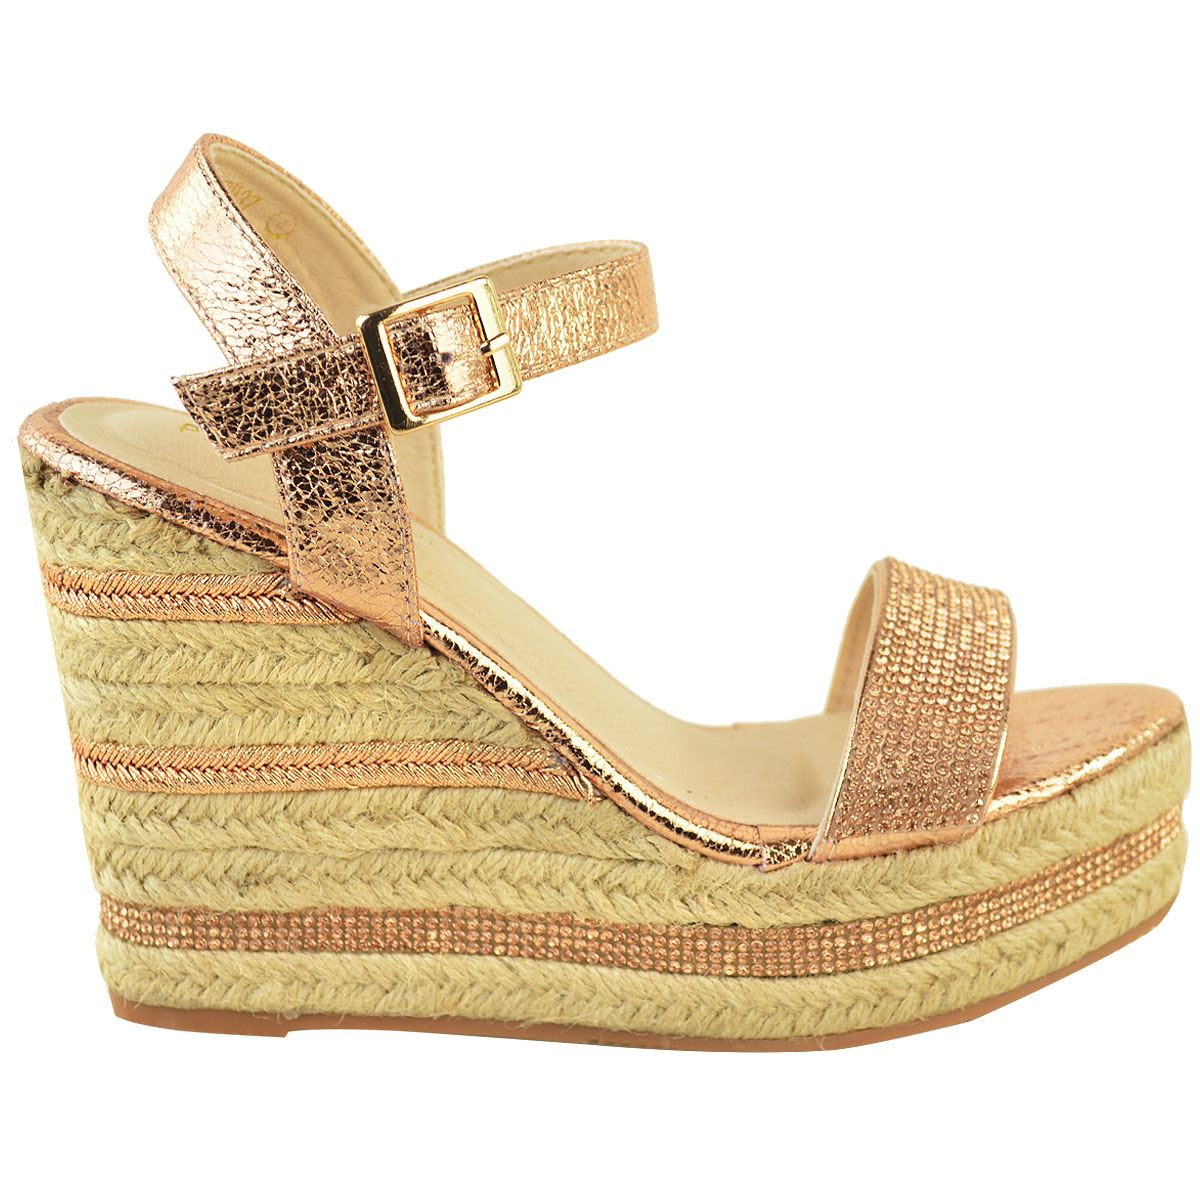 Womens-Ladies-Wedged-High-Heel-Sandals-Raffia-Diamante-Party-Shoes-Summer-Size thumbnail 9